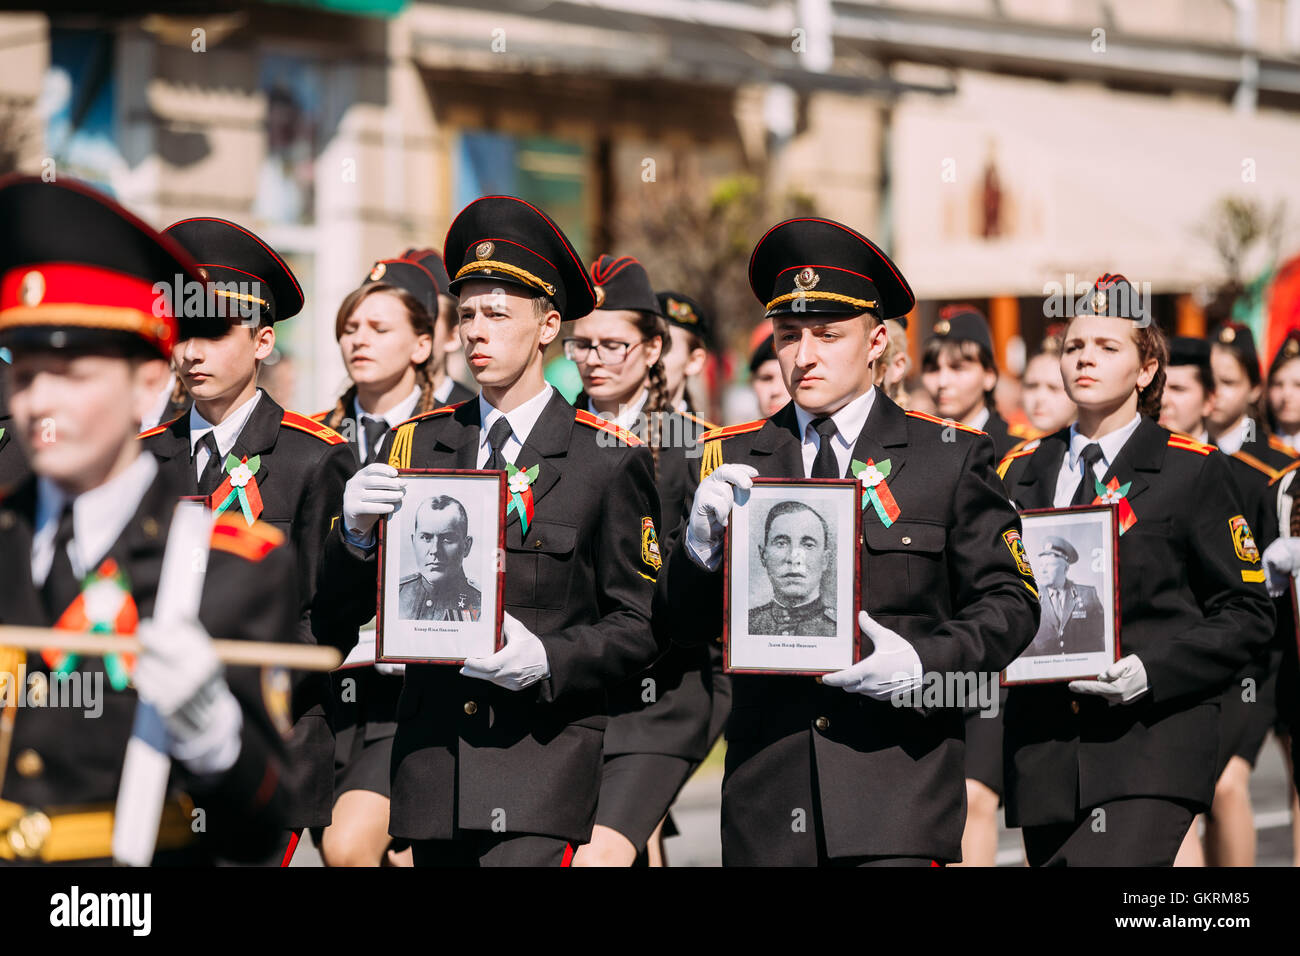 The Immortal Regiment Action March At Parade Procession Of Young People From Gomel State Cadet School With Portreits - Stock Image